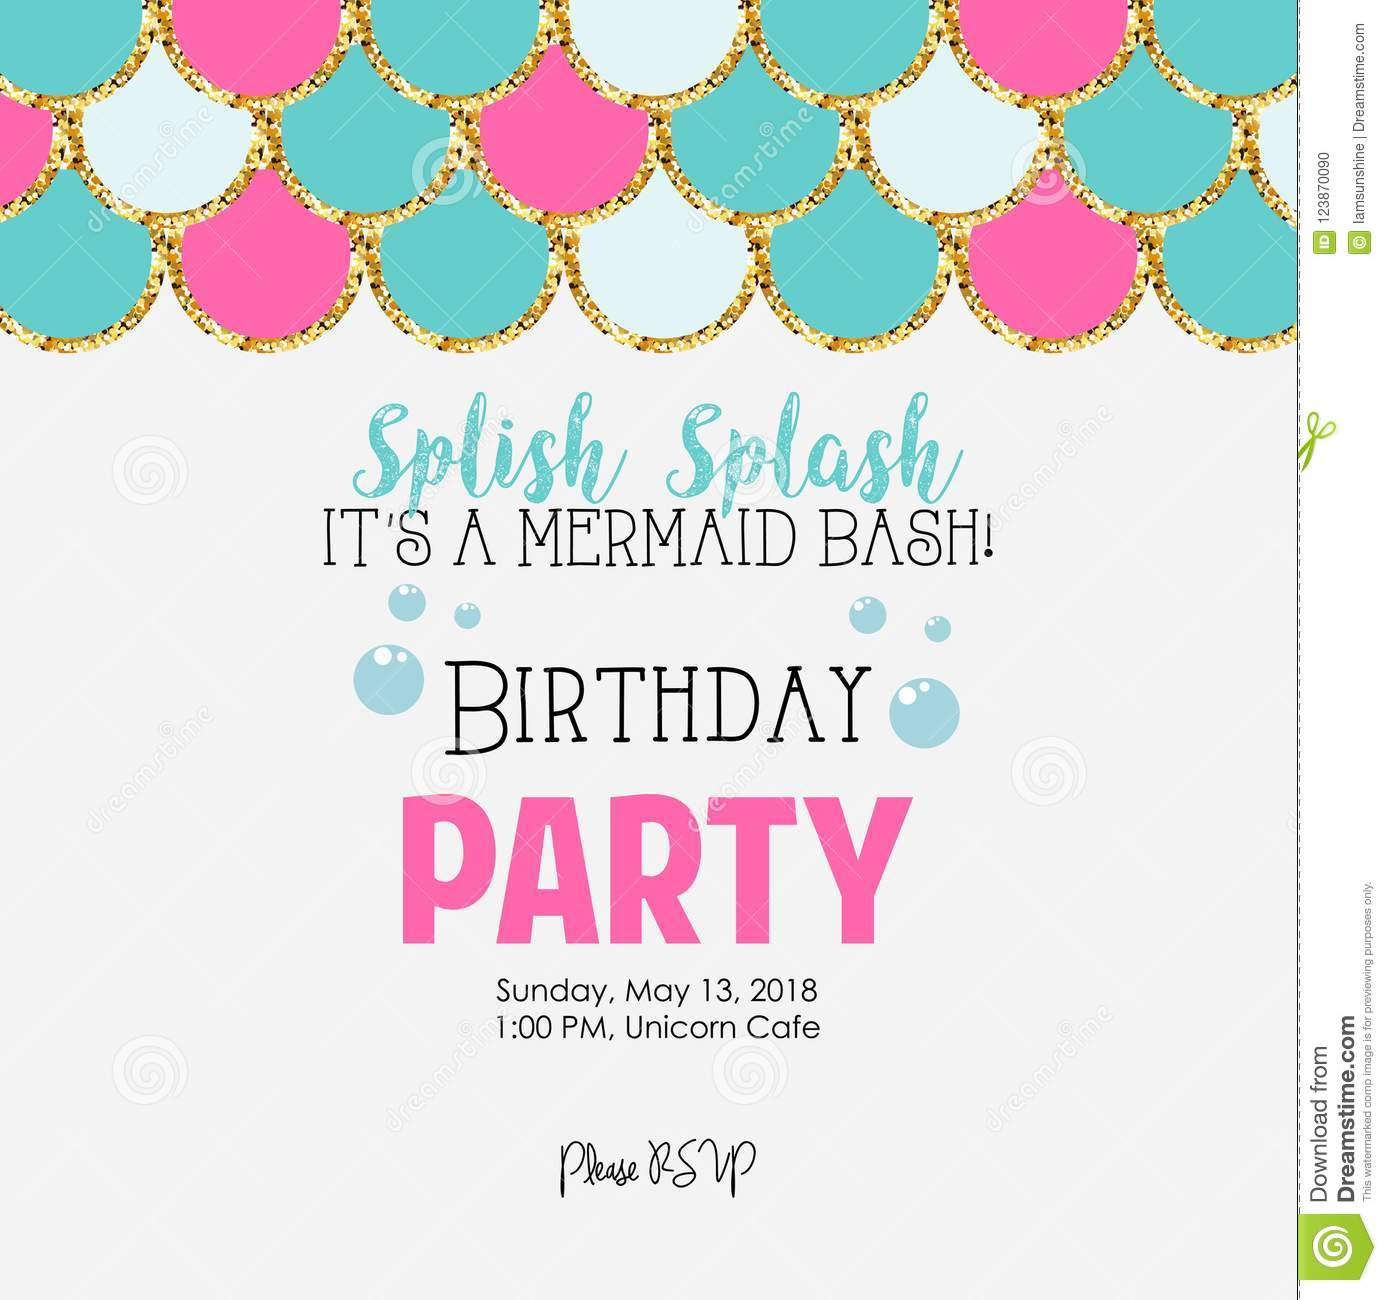 Mermaid Birthday Party Stock Vector Illustration Of Fantasy 123870090